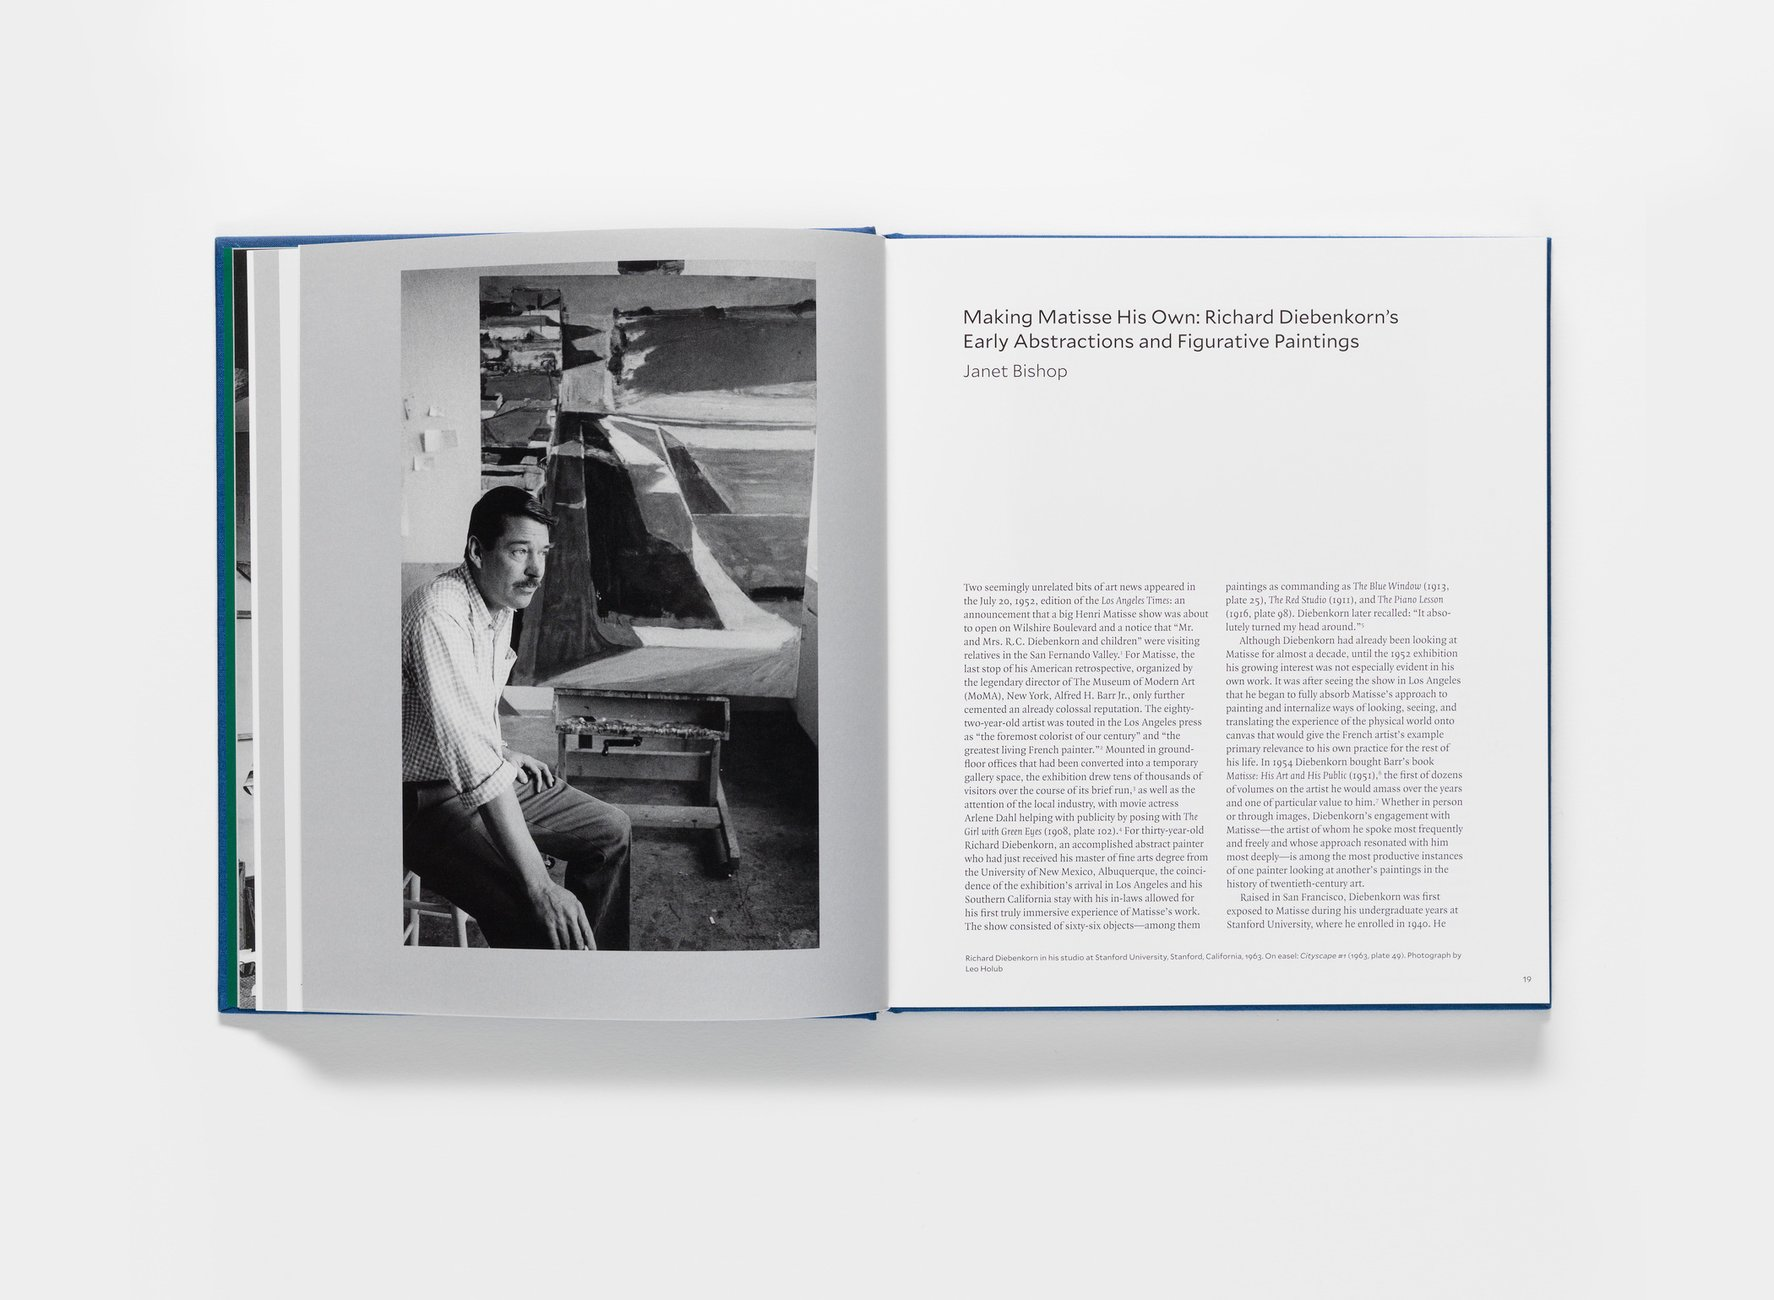 Matisse/Diebenkorn publication pages 18-19